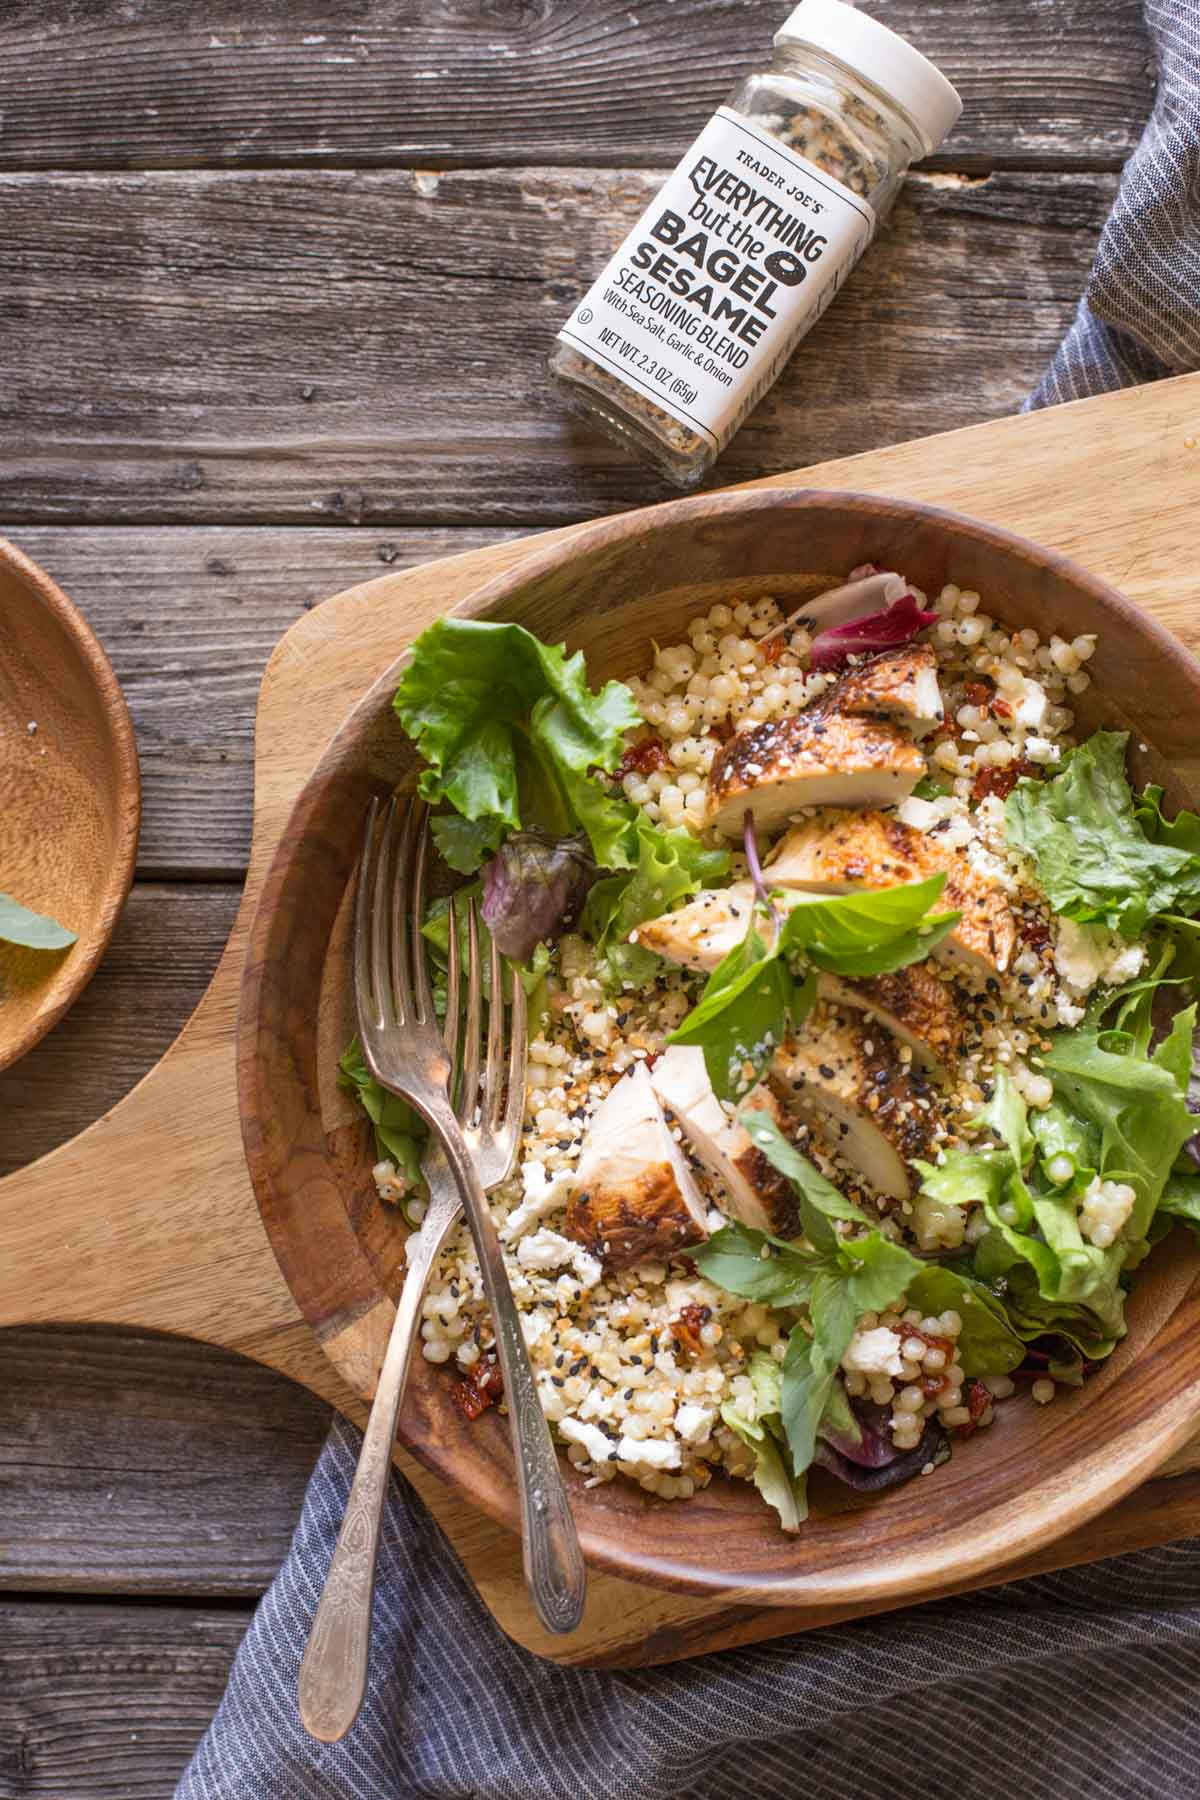 Israeli Couscous Salad with Honey Lemon Vinaigrette in a wooden bowl on a wooden cutting board with Everything But the Bagel Seasoning.